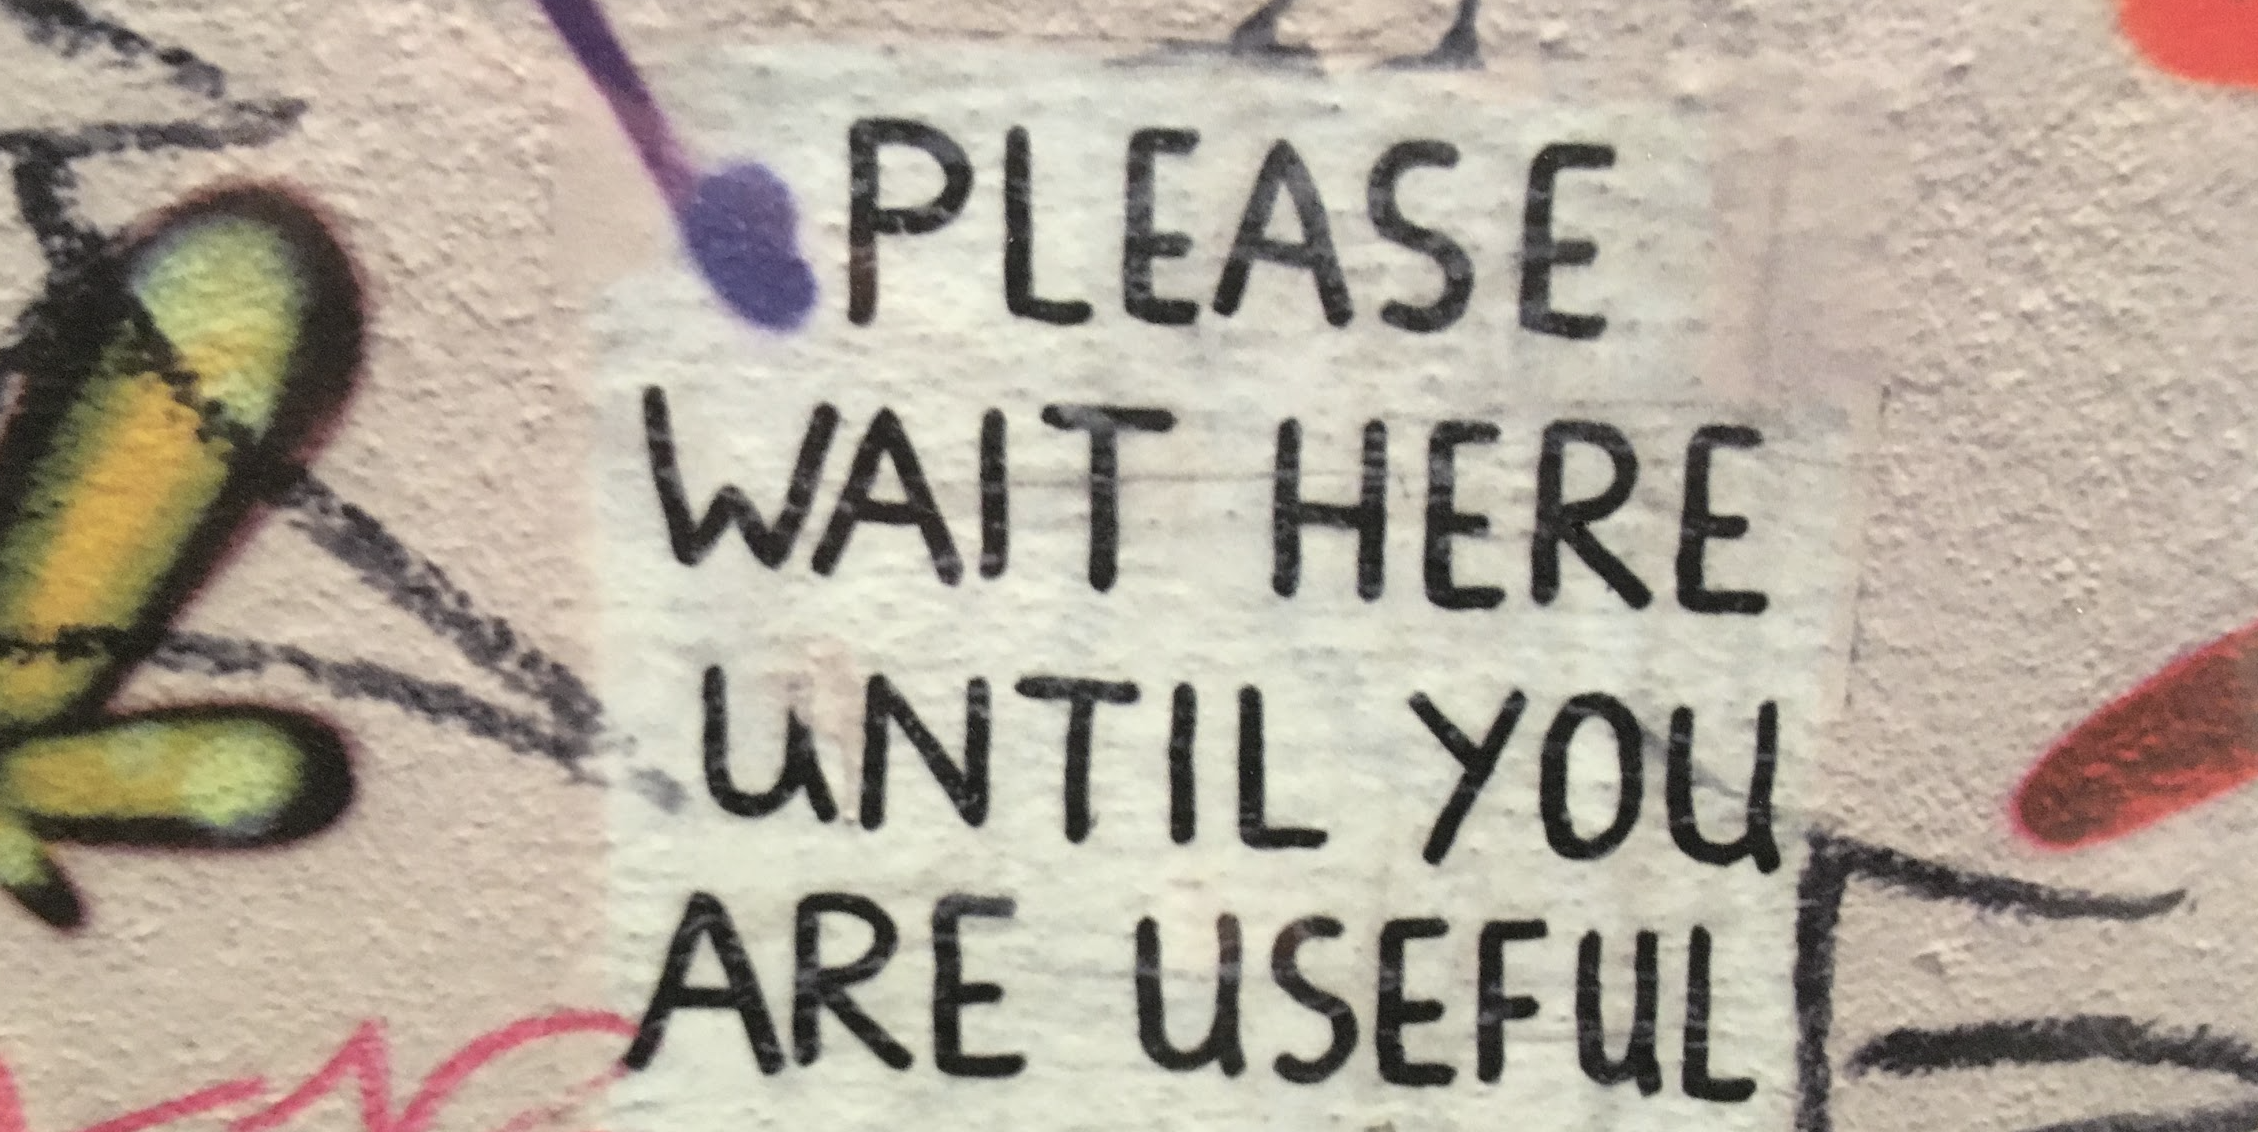 a graffiti saying: please wait until you are useful